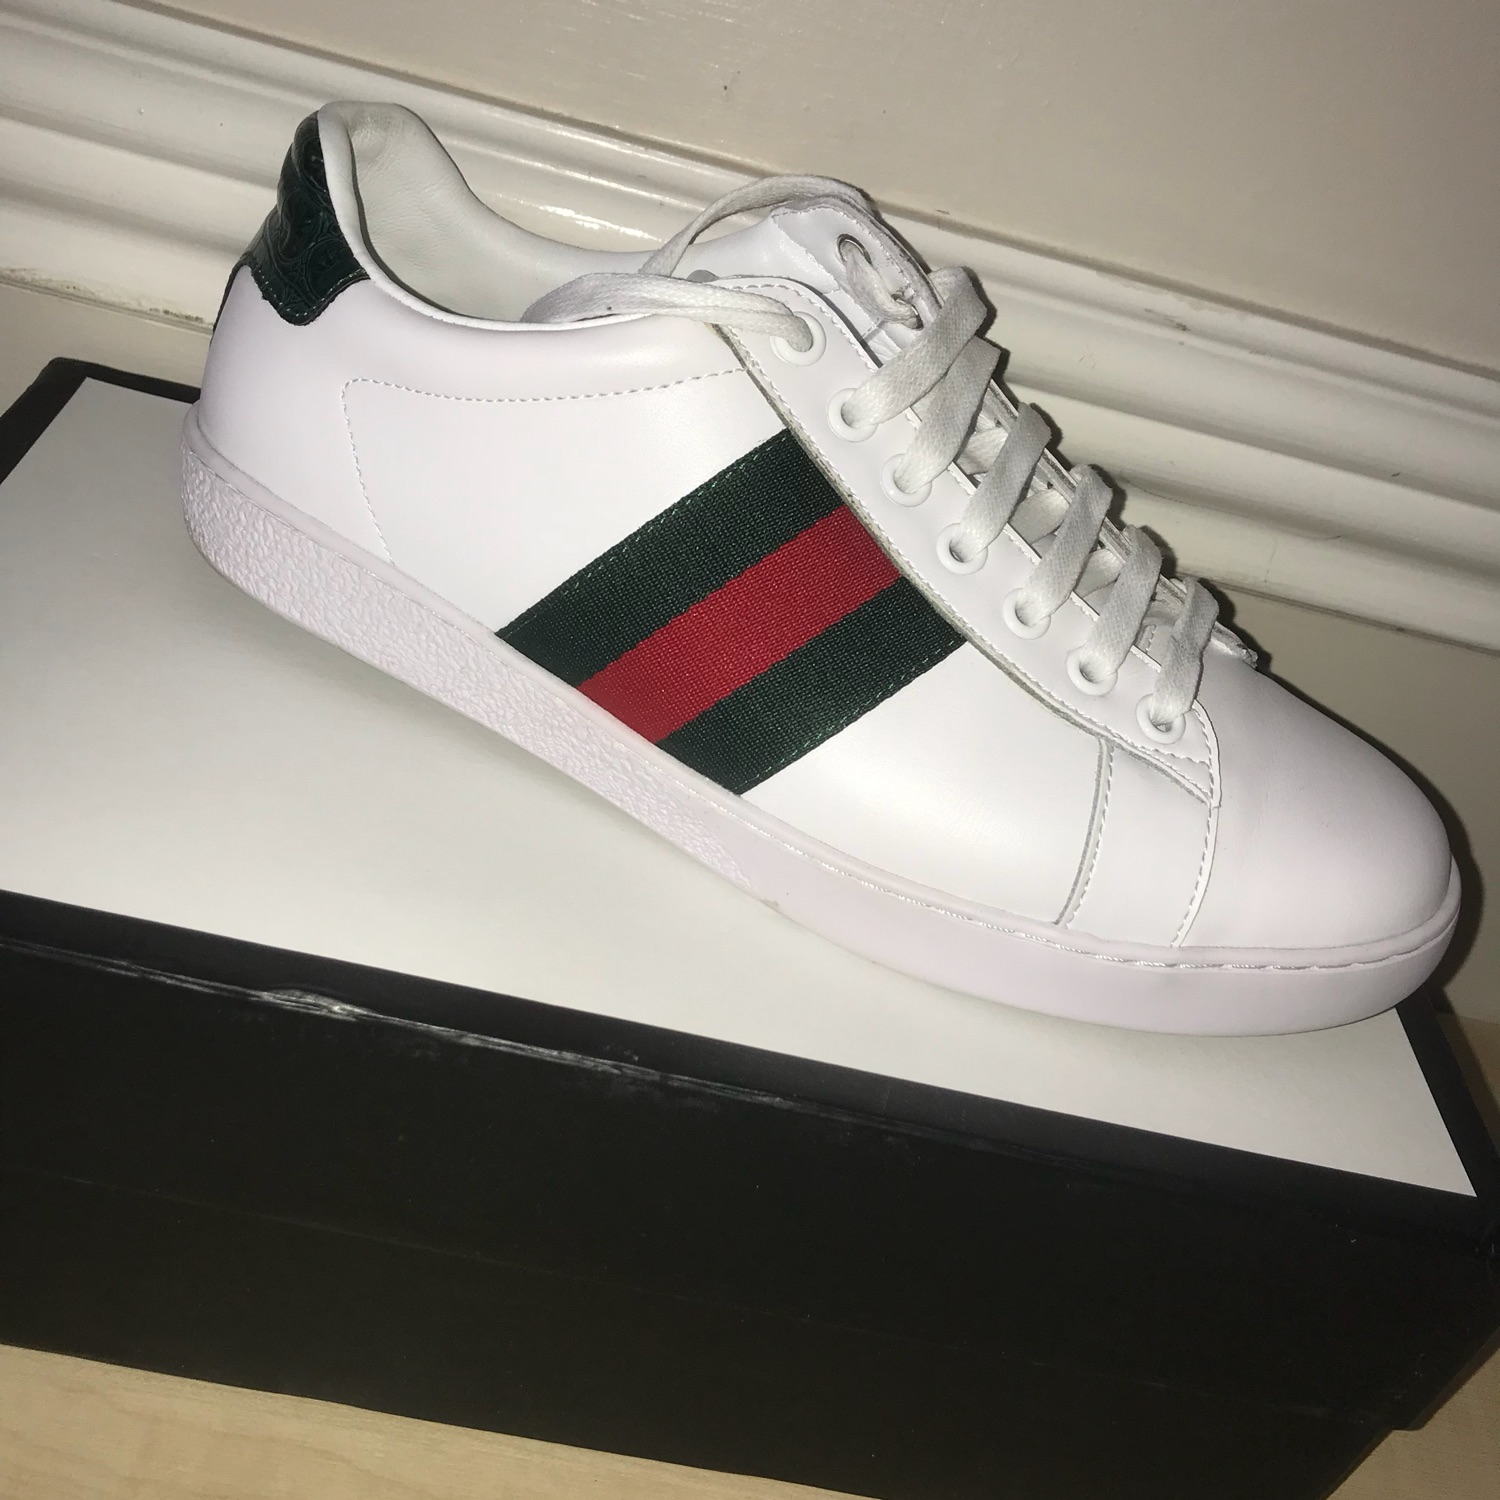 Gucci Ace Green Leather Trainers Men's